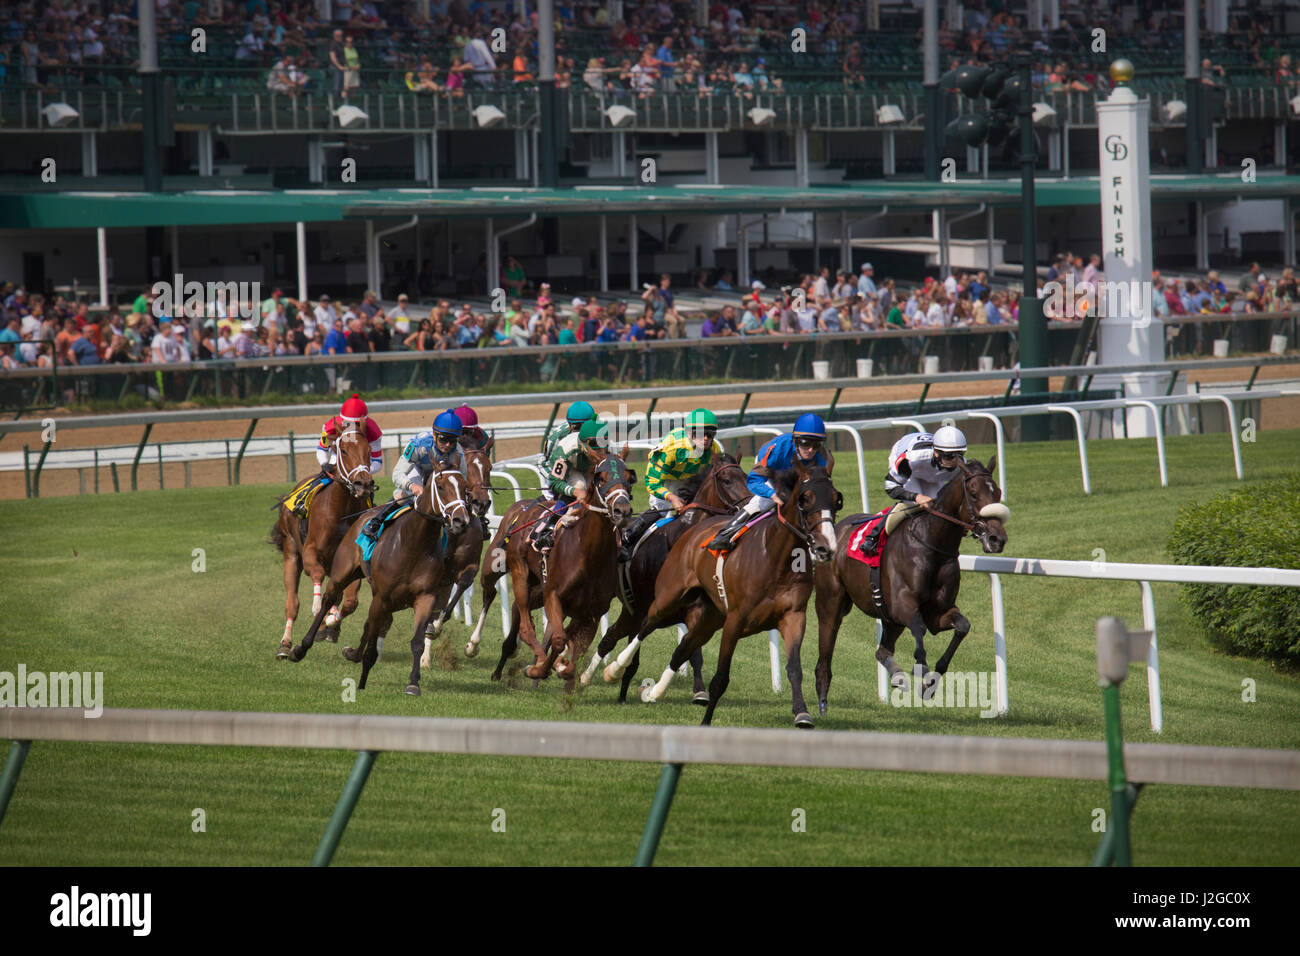 USA, Kentucky, Louisville. Horses racing on turf at Churchill Downs. Credit as: Don Grall / Jaynes Gallery / DanitaDelimont.com - Stock Image